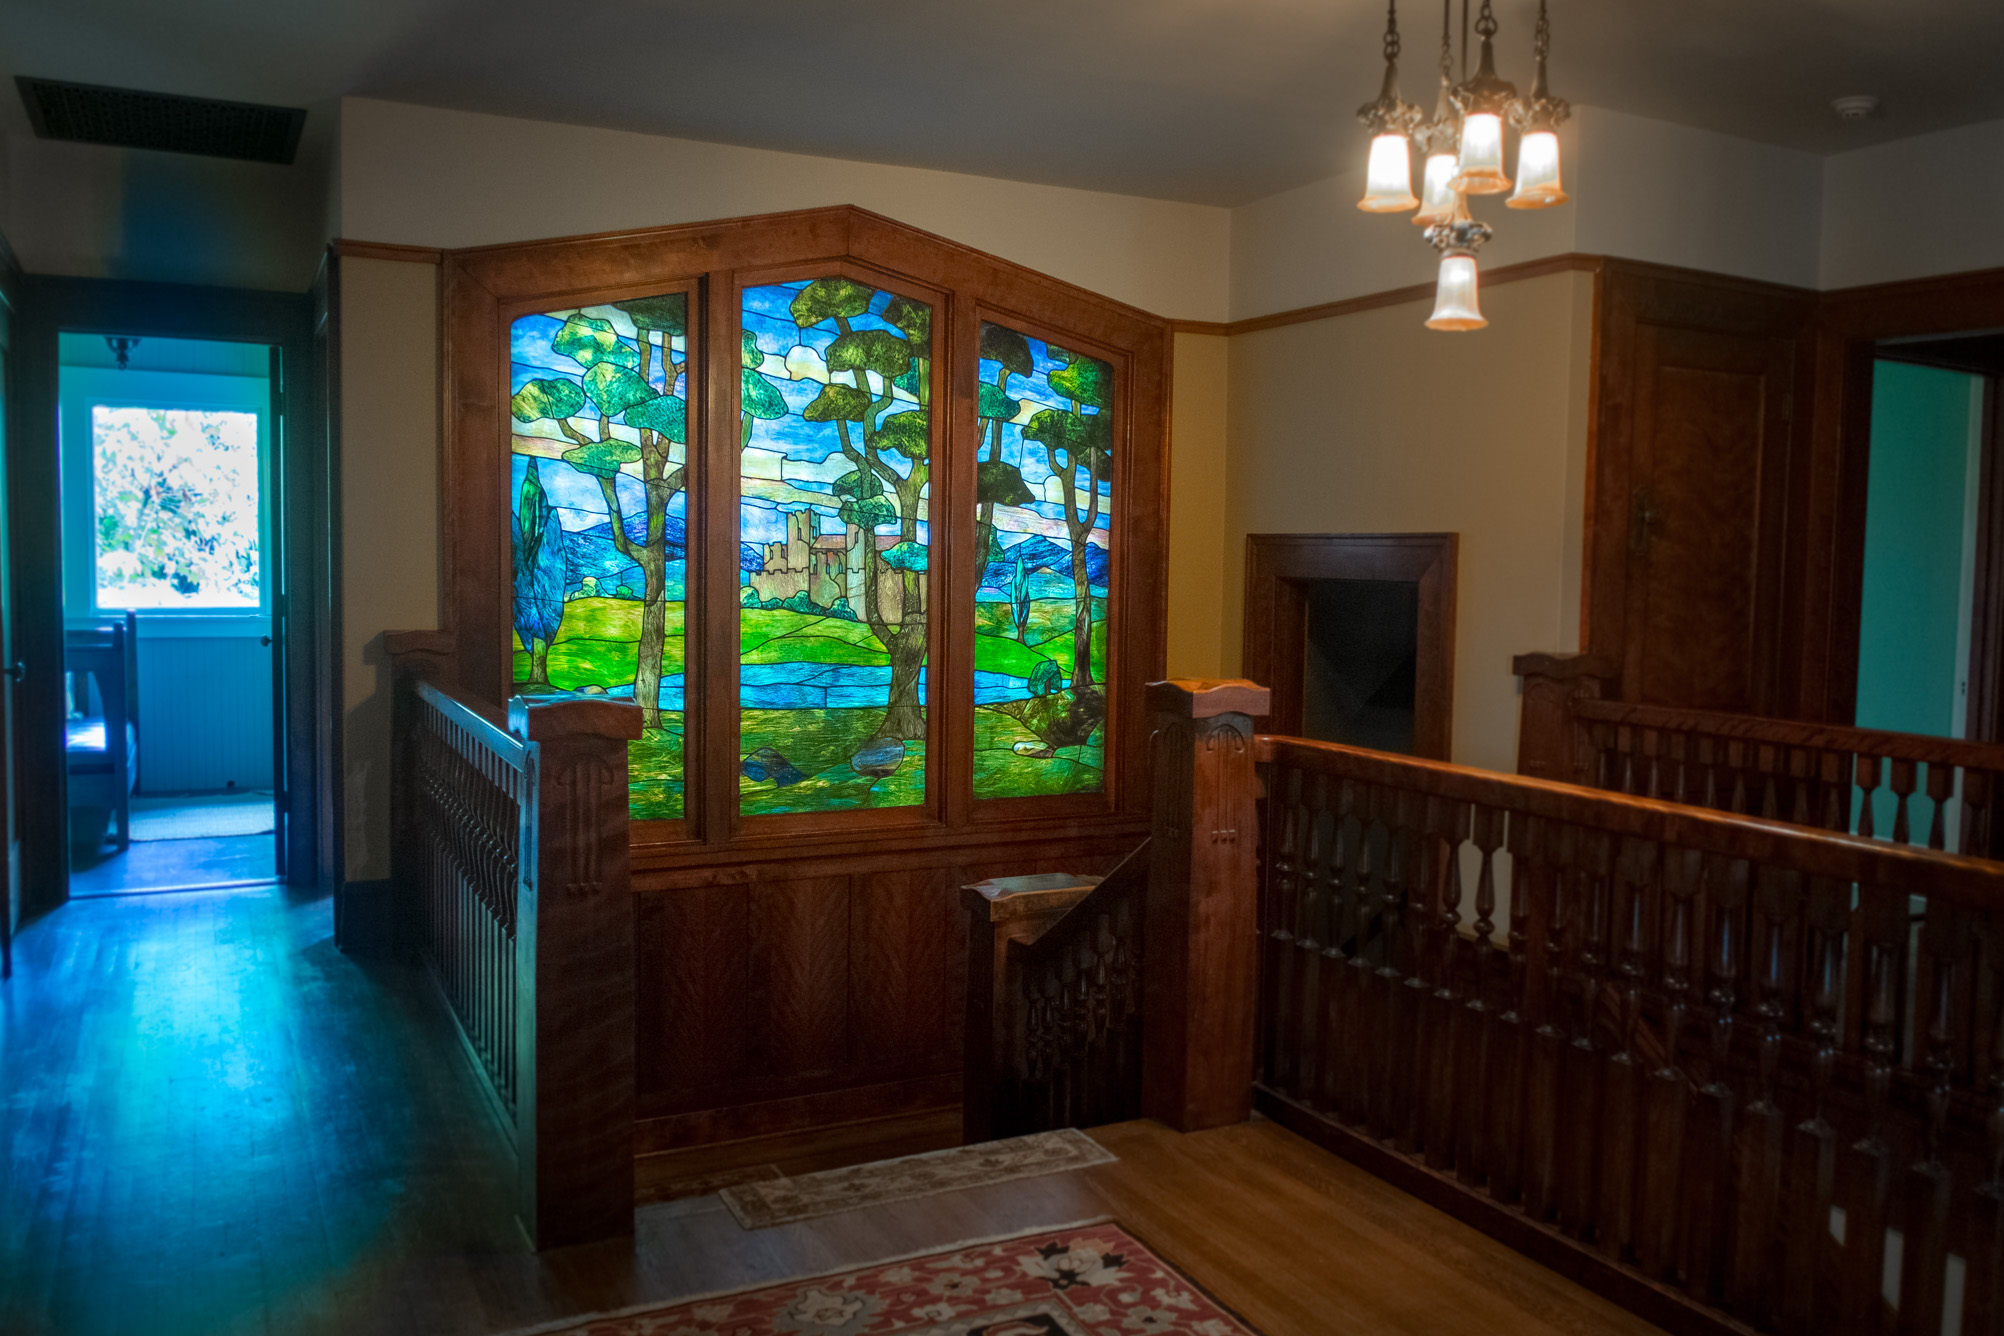 craftsman-stained-glass.jpg